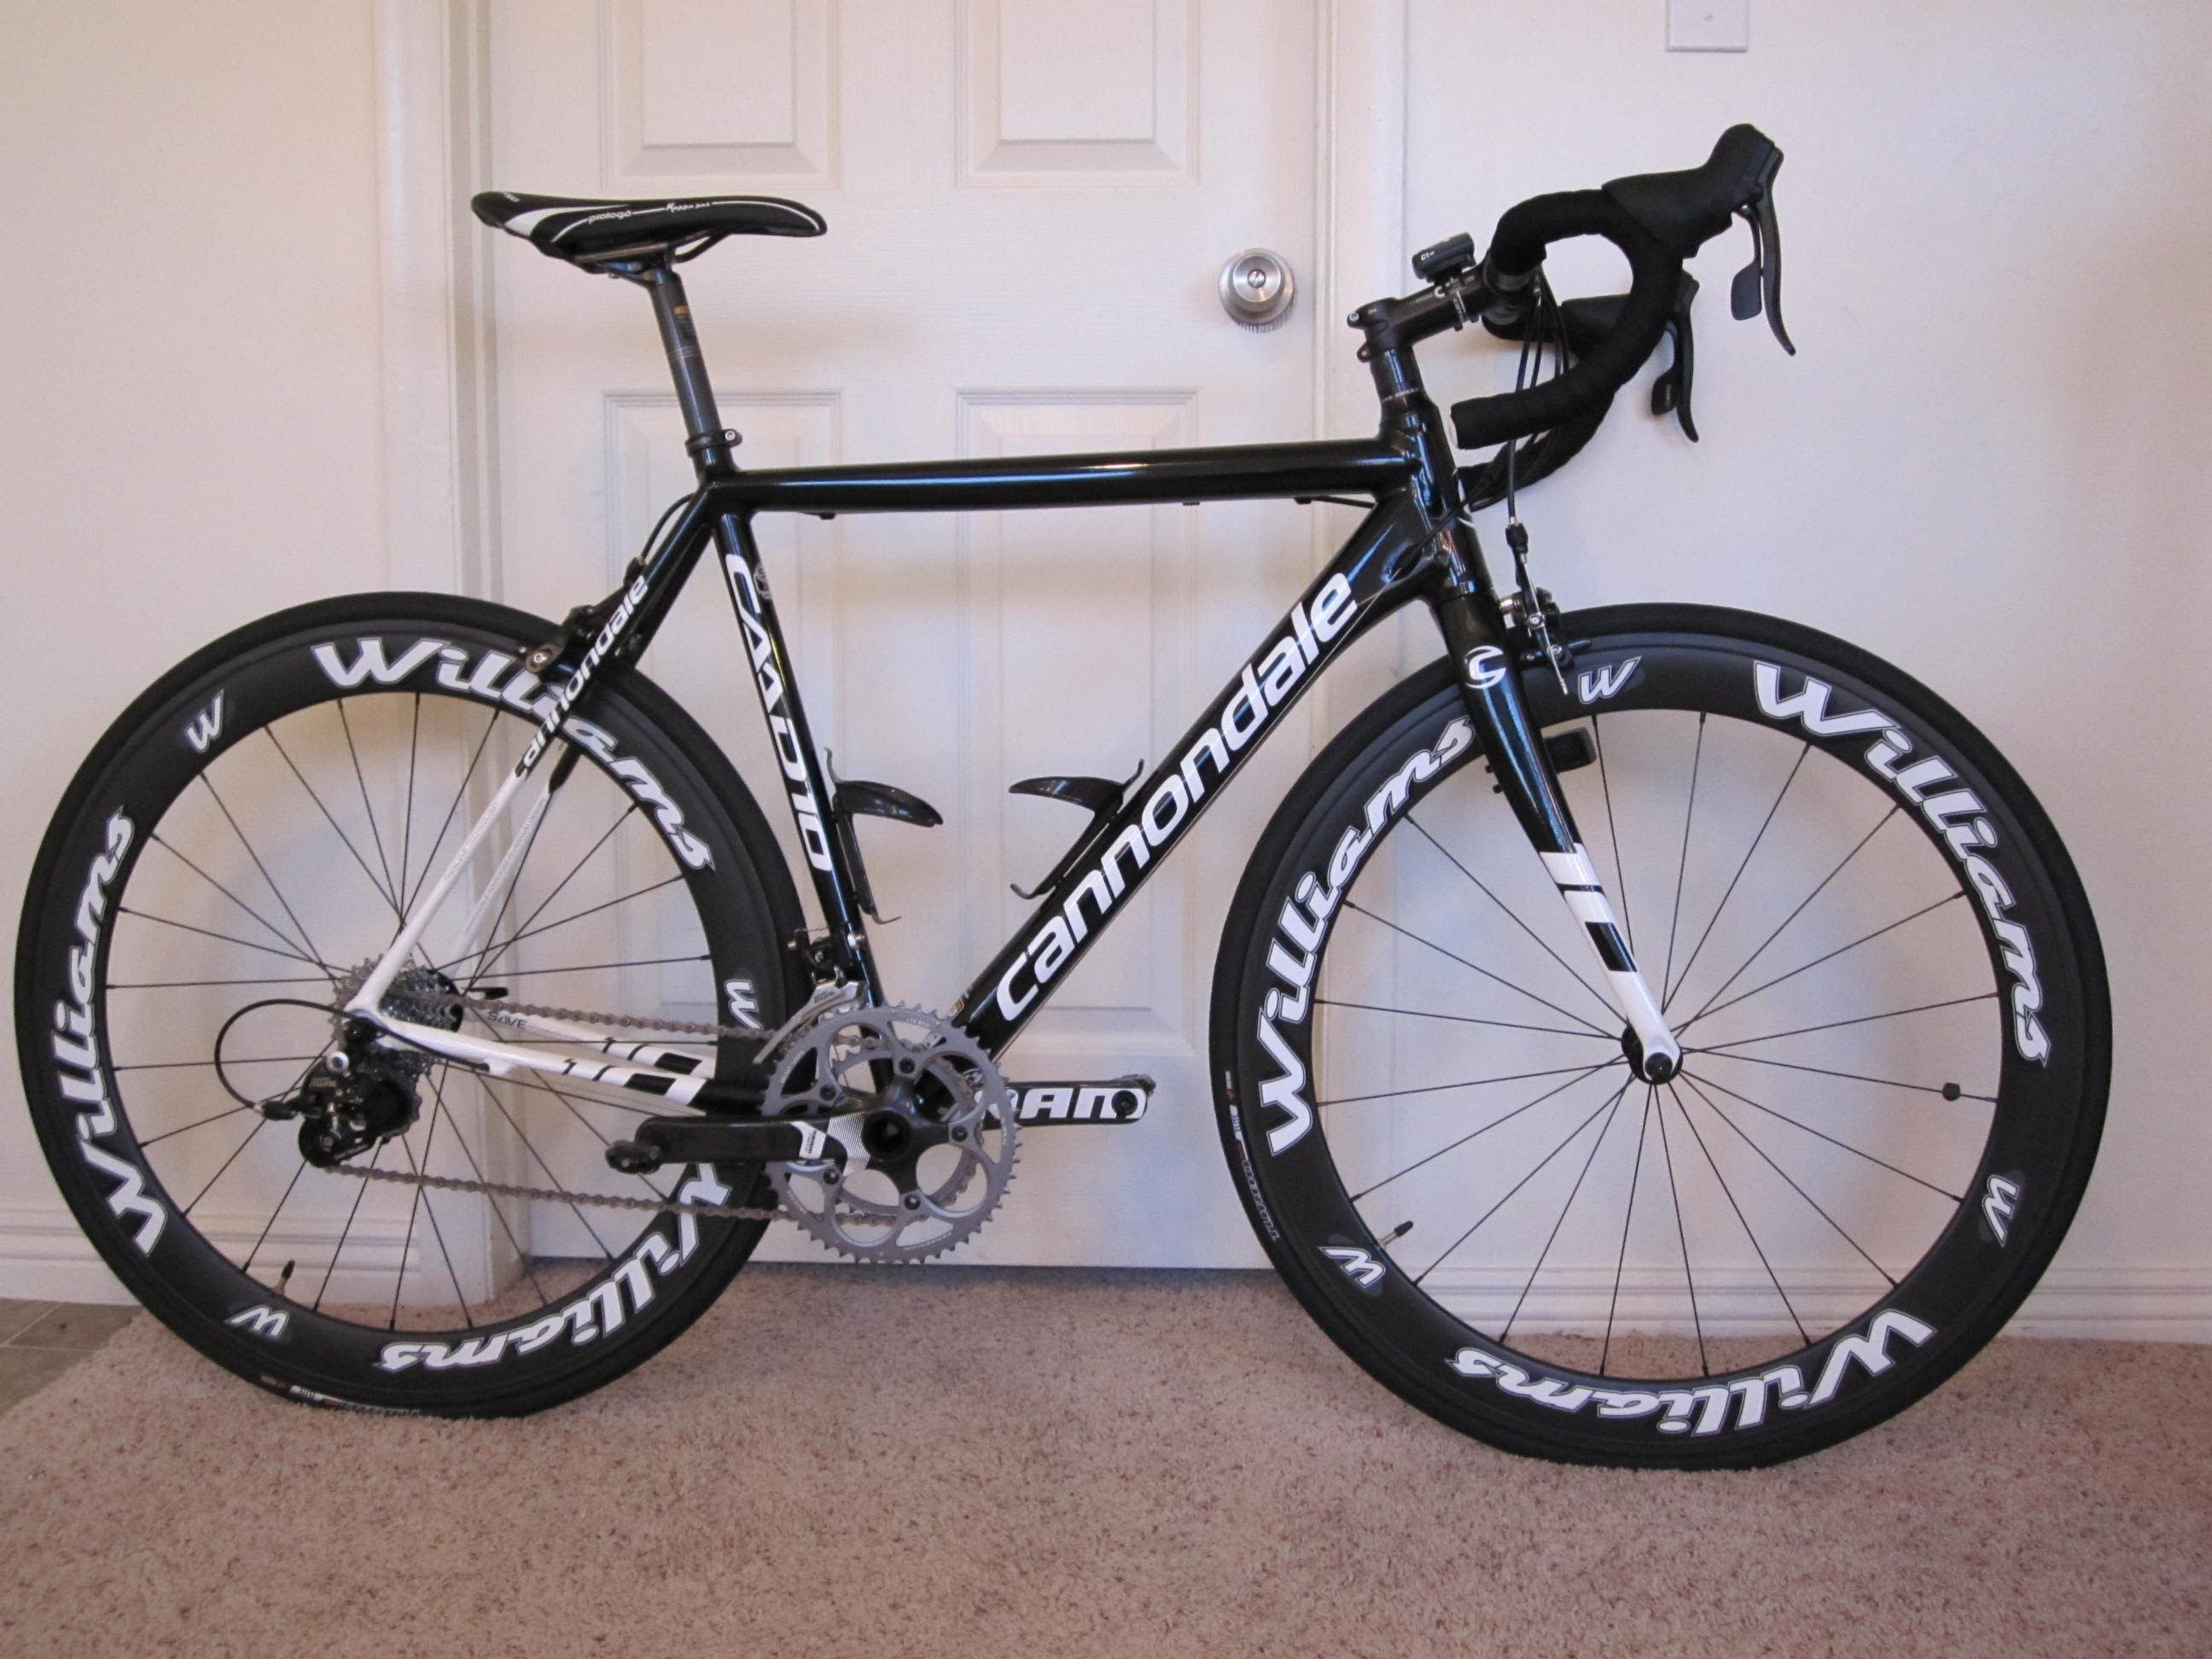 1c30edaefcc Cannondale Caad10 Road bike review with Williams wheels - YouTube ...